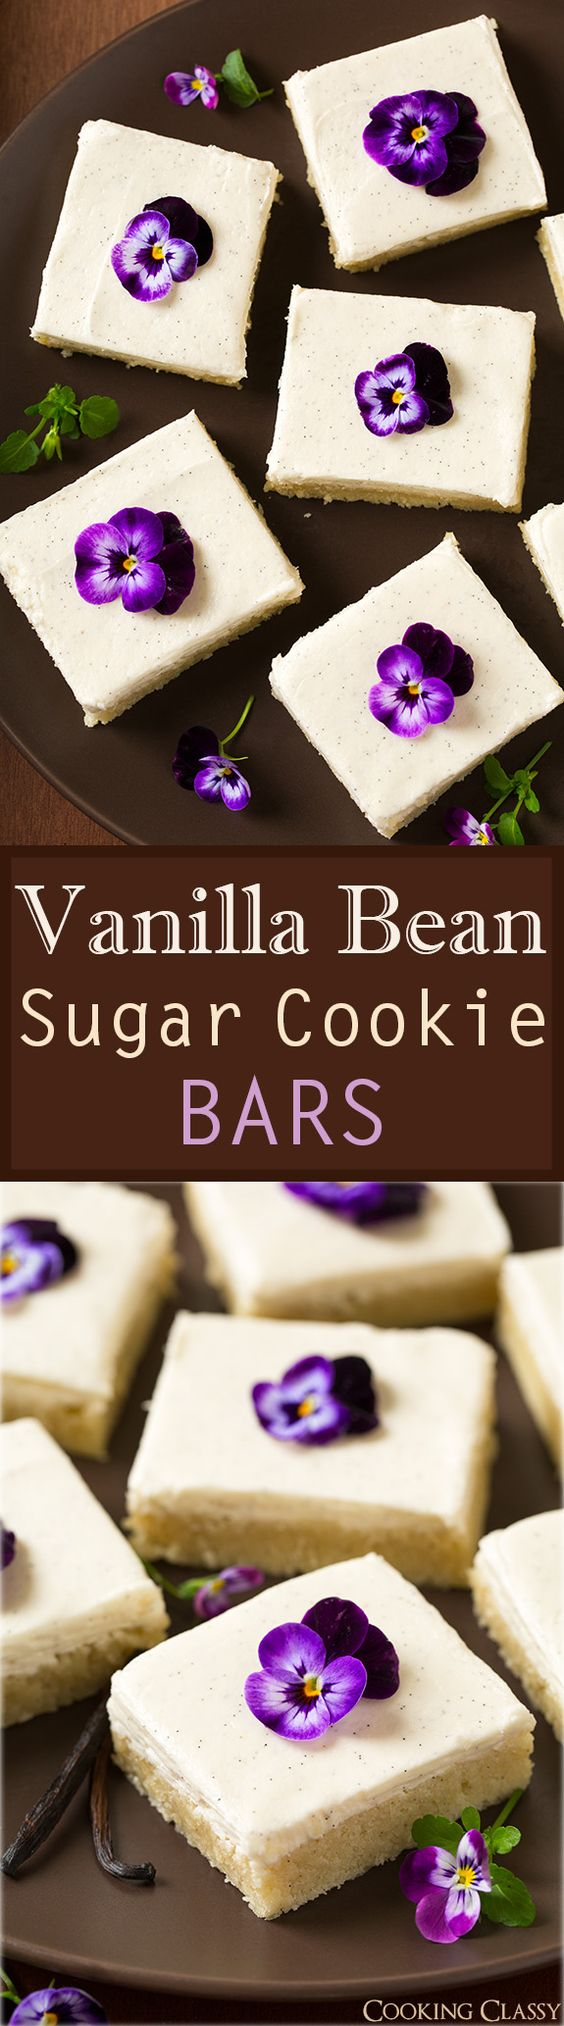 Vanilla Bean Sugar Cookie Dessert Bars with Vanilla Bean Frosting aka Very Vanilla Sugar Cookie Bars Recipe via Cooking Classy - these melt in your mouth! My new favorite sugar cookie bar! #dessertbars #cookiebars #barsrecipes #dessertforacrowd #partydesserts #christmasdesserts #holidaydesserts #onepandesserts